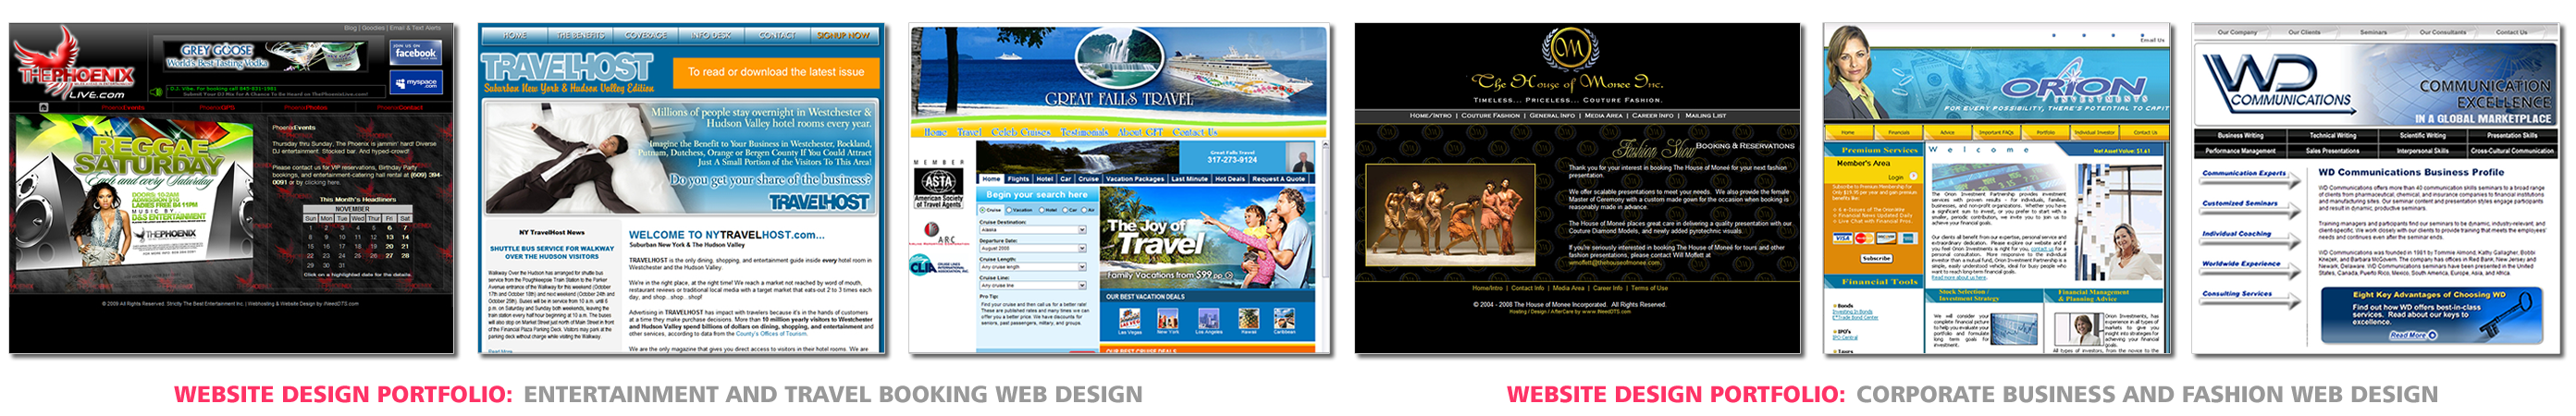 Entertainment or Travel Booking Web Design, Corporate Business and Fashion Web Design